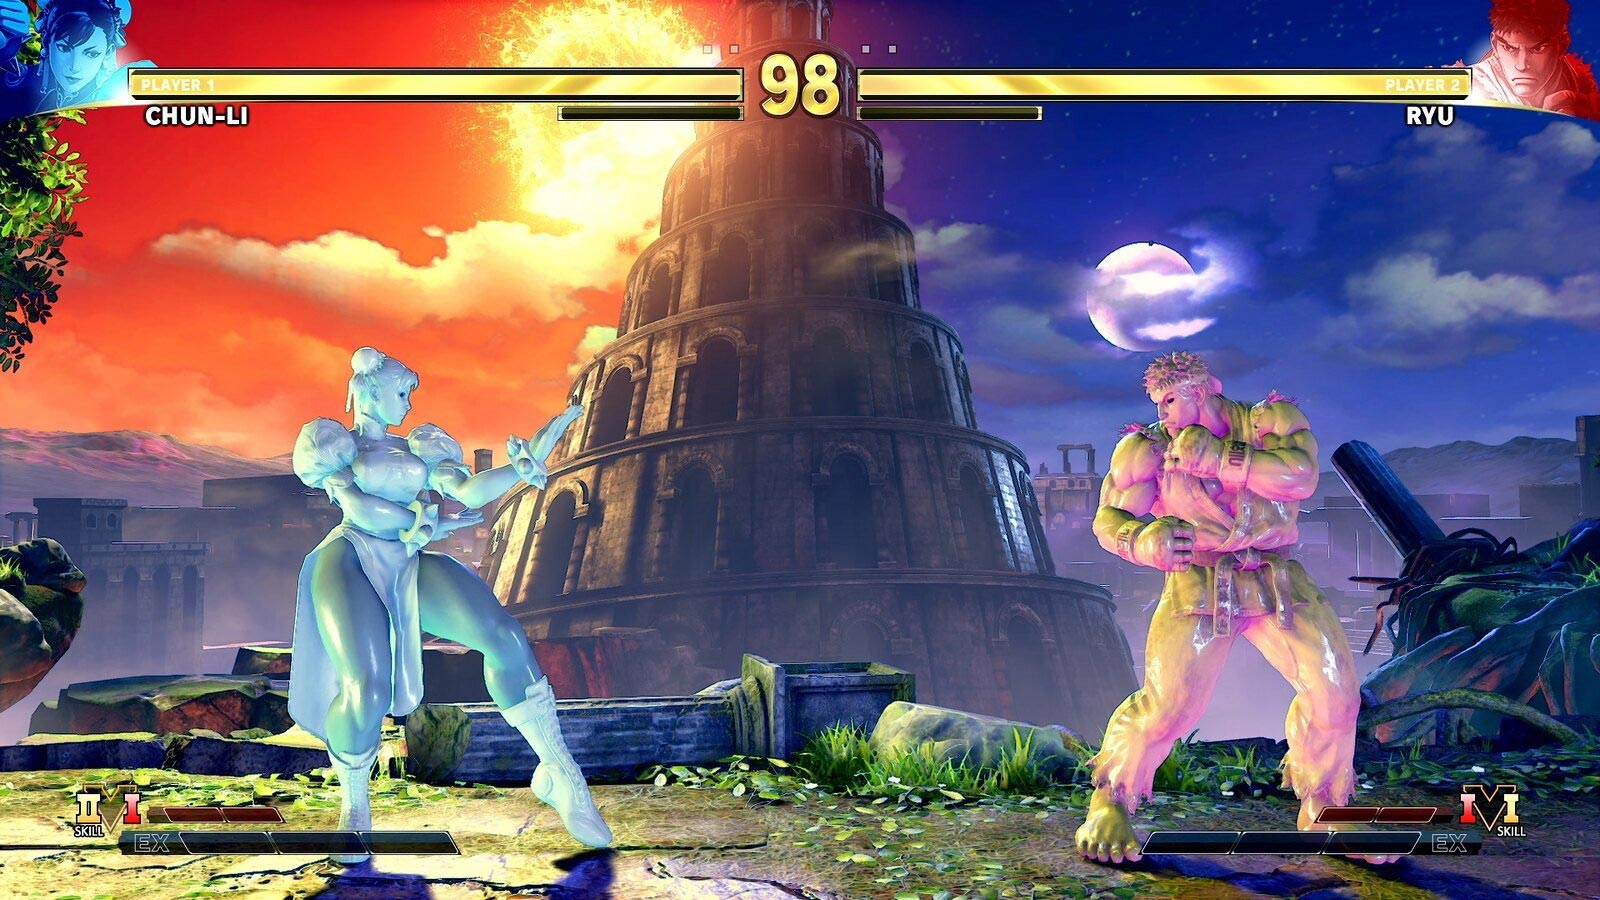 Street Fighter 5 Season 5 Eleven and DLC purchase options 4 out of 5 image gallery